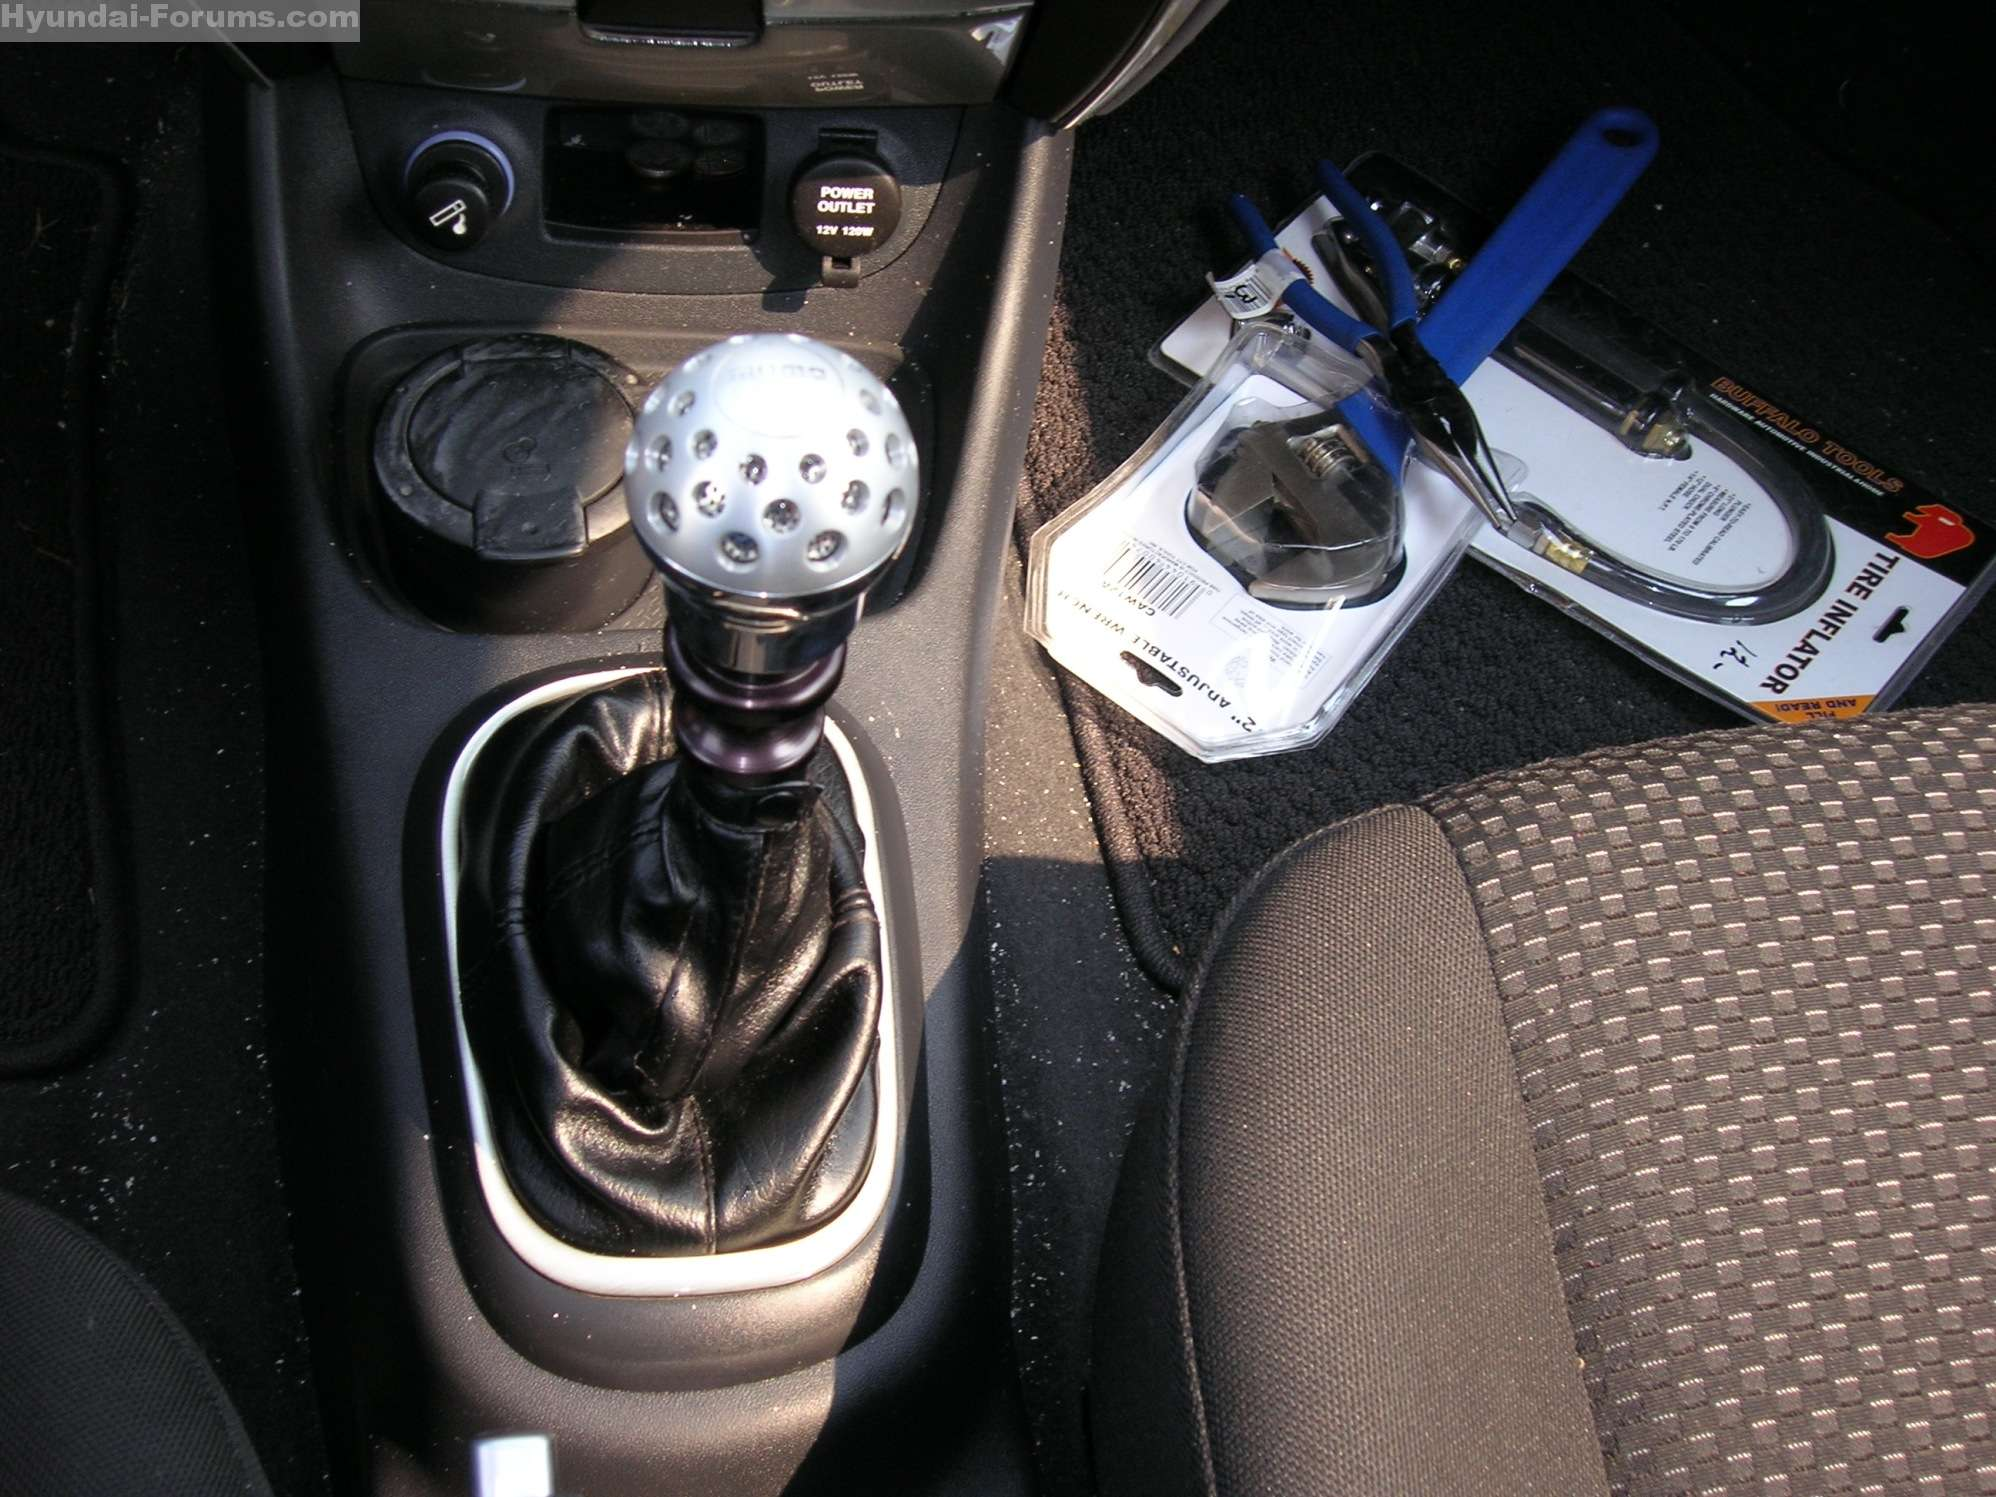 Shift Knob Replacement | Hyundai Forums